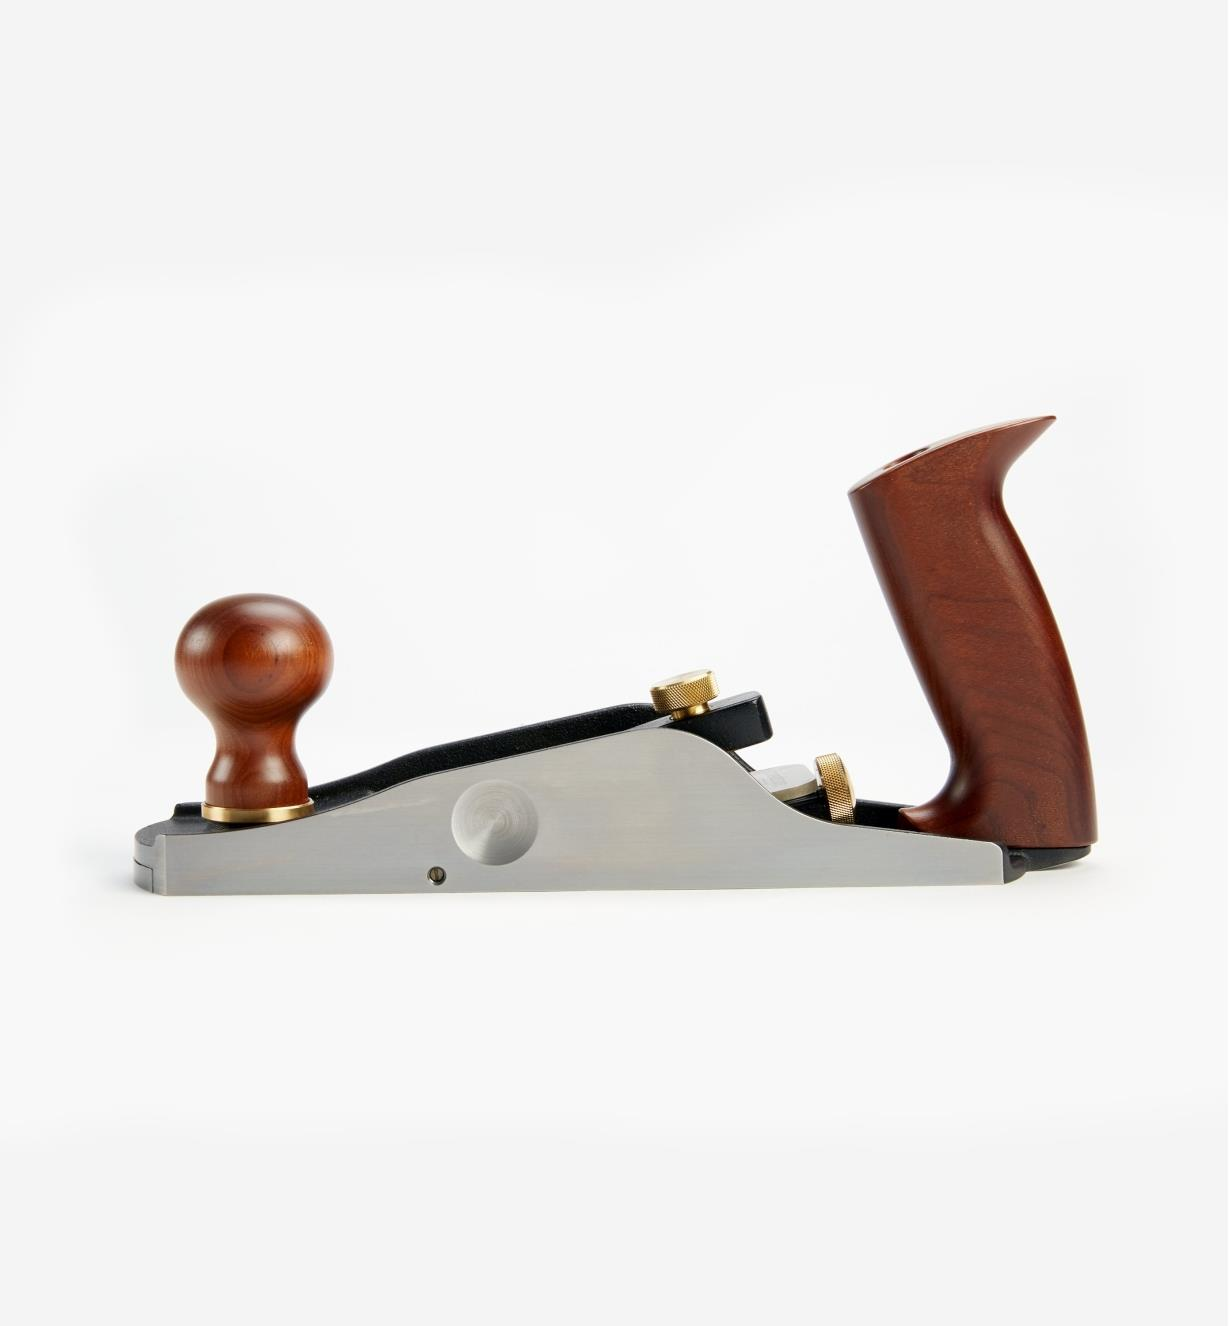 05P2551 - Veritas Low-Angle Smooth Plane, O1